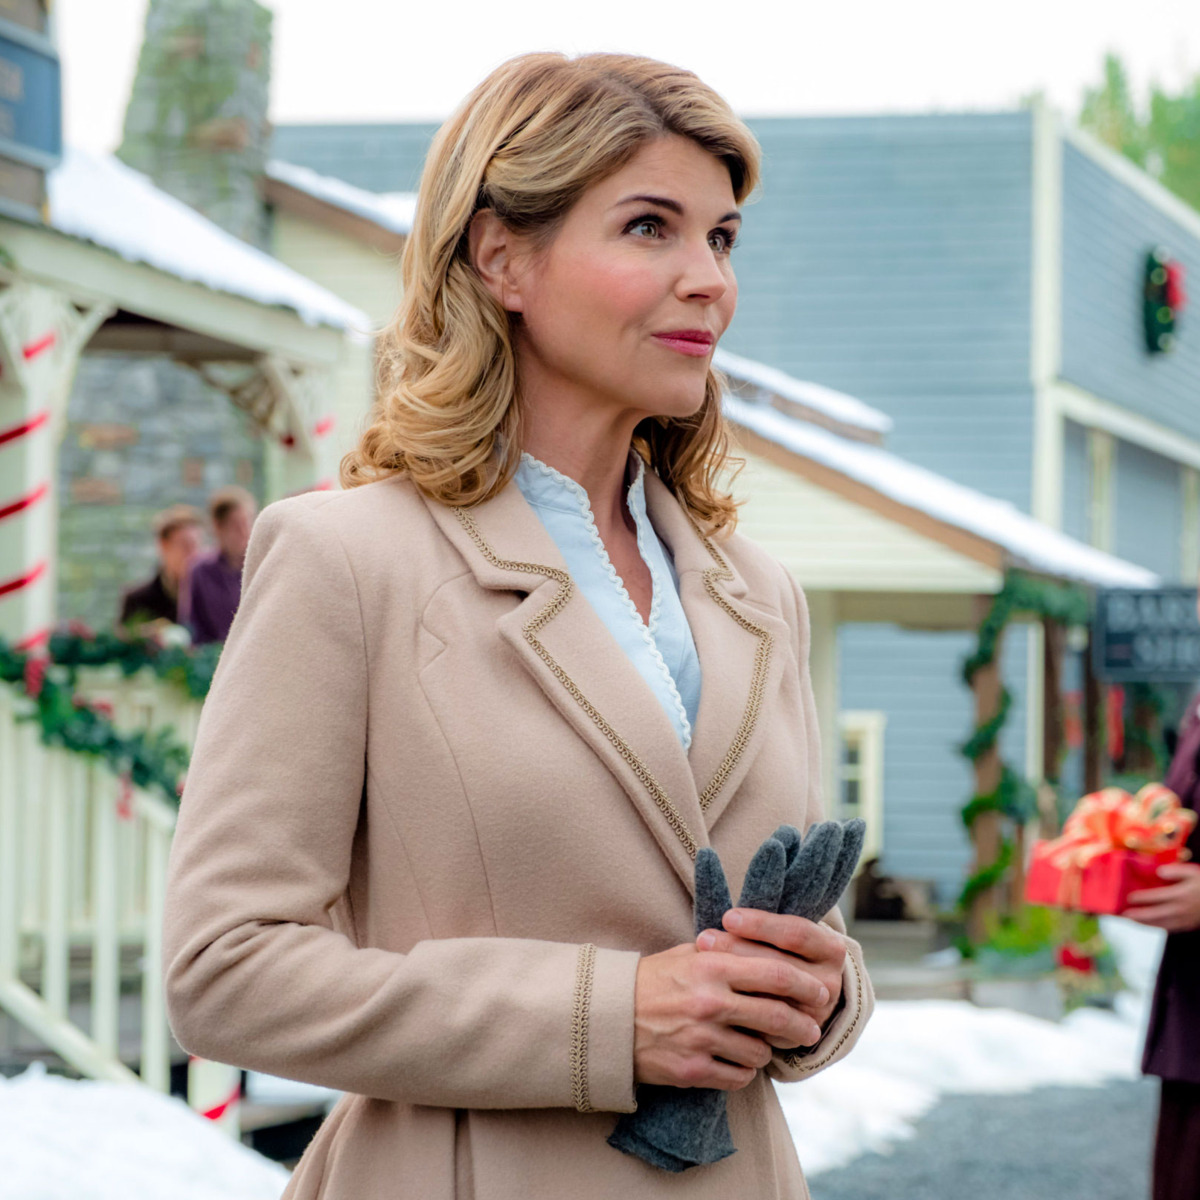 12 Gifts Of Christmas Cast.Hallmark Movie 12 Gifts Of Christmas Cast Binbirders Com